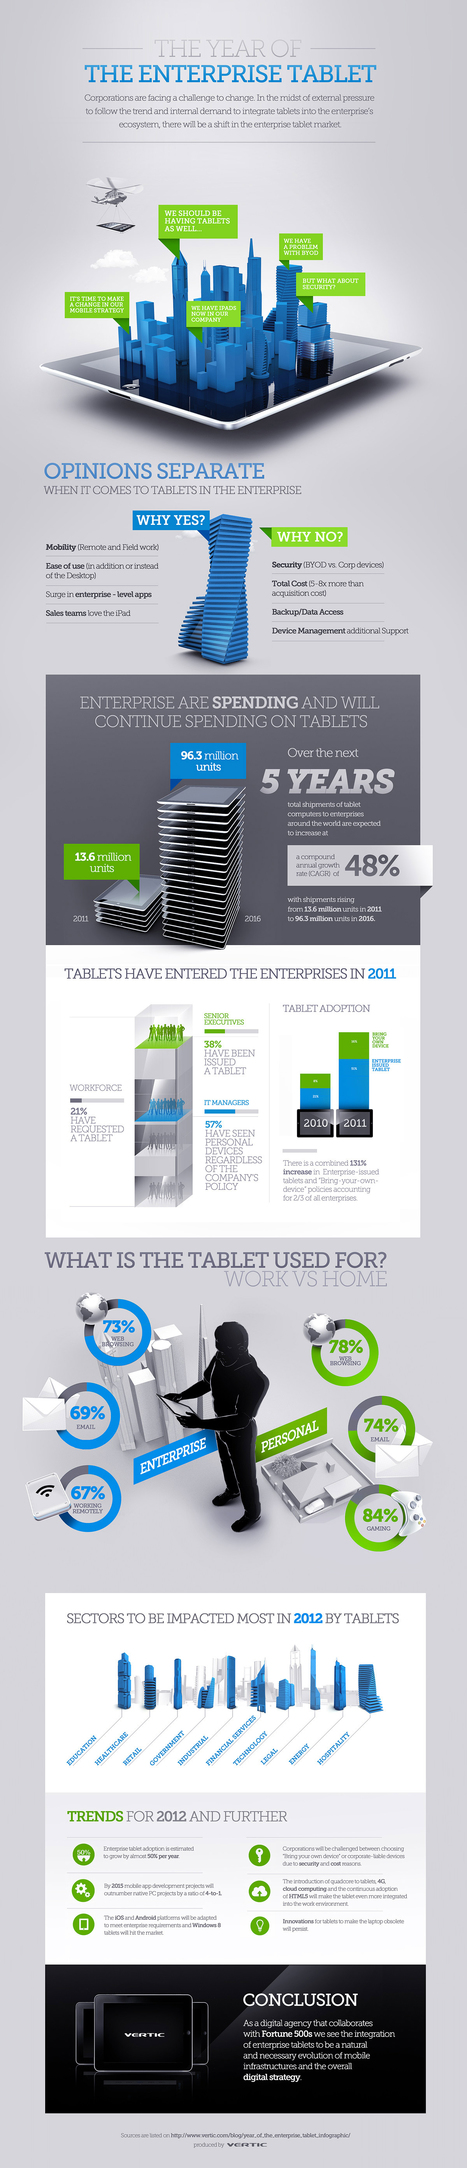 The Year Of the Enterprise Tablet [Infographic] | digital marketing strategy | Scoop.it